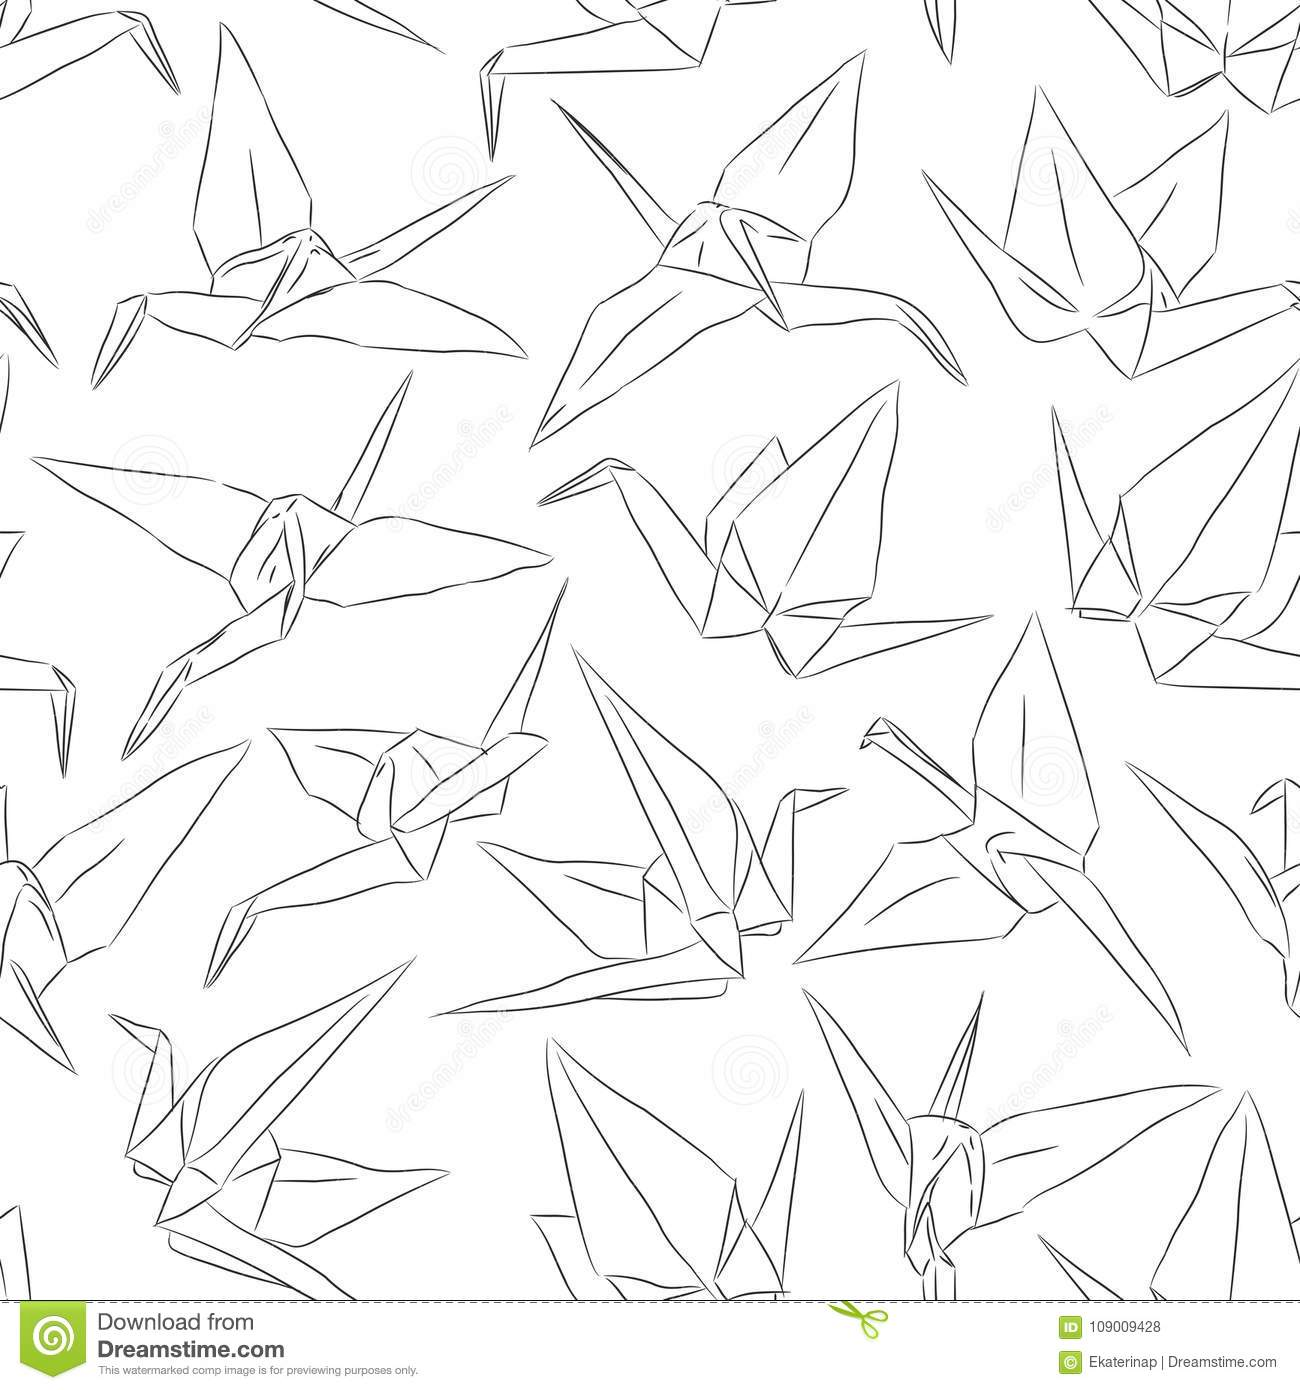 Japanese origami white paper cranes set sketch seamless pattern japanese origami white paper cranes set sketch seamless pattern symbol of happiness luck and longevity black line contour on wh buycottarizona